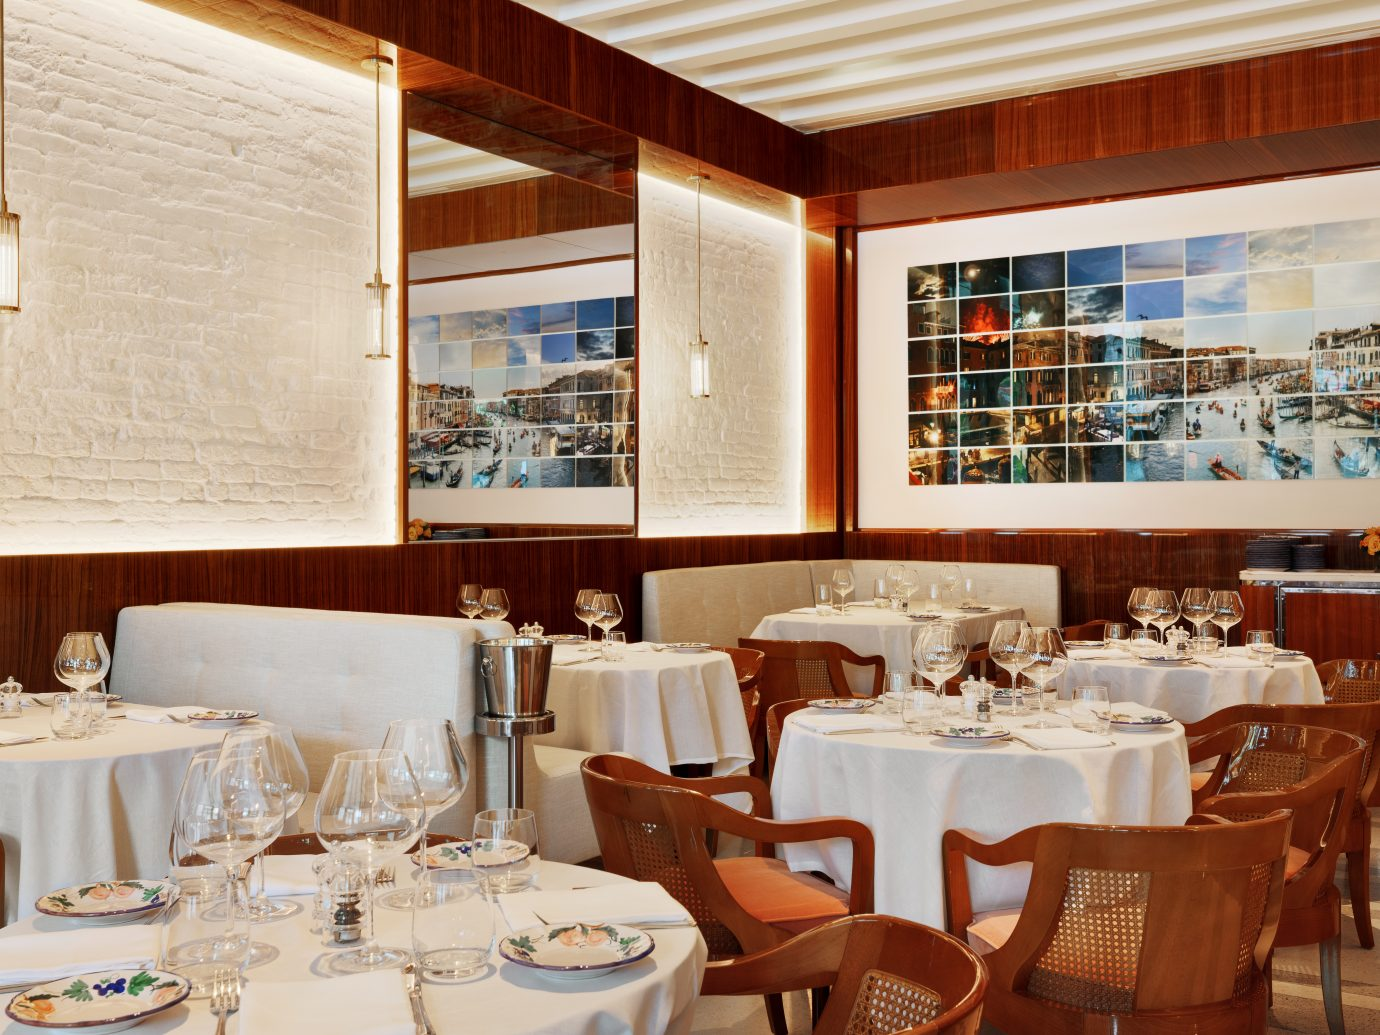 tables and interior at Bellini